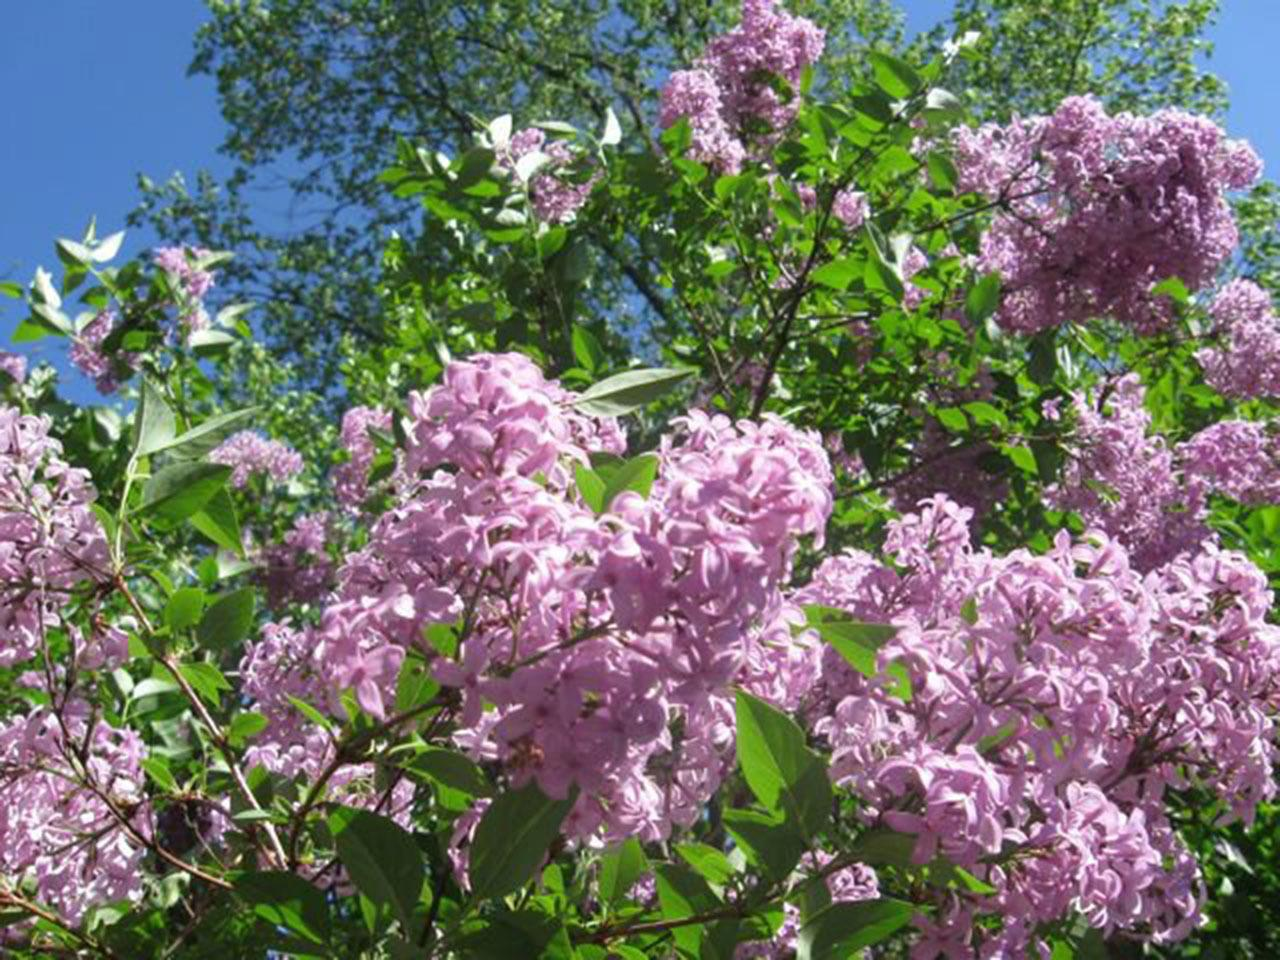 #Taos attractions #Lilac Festival #Taos #New Mexico